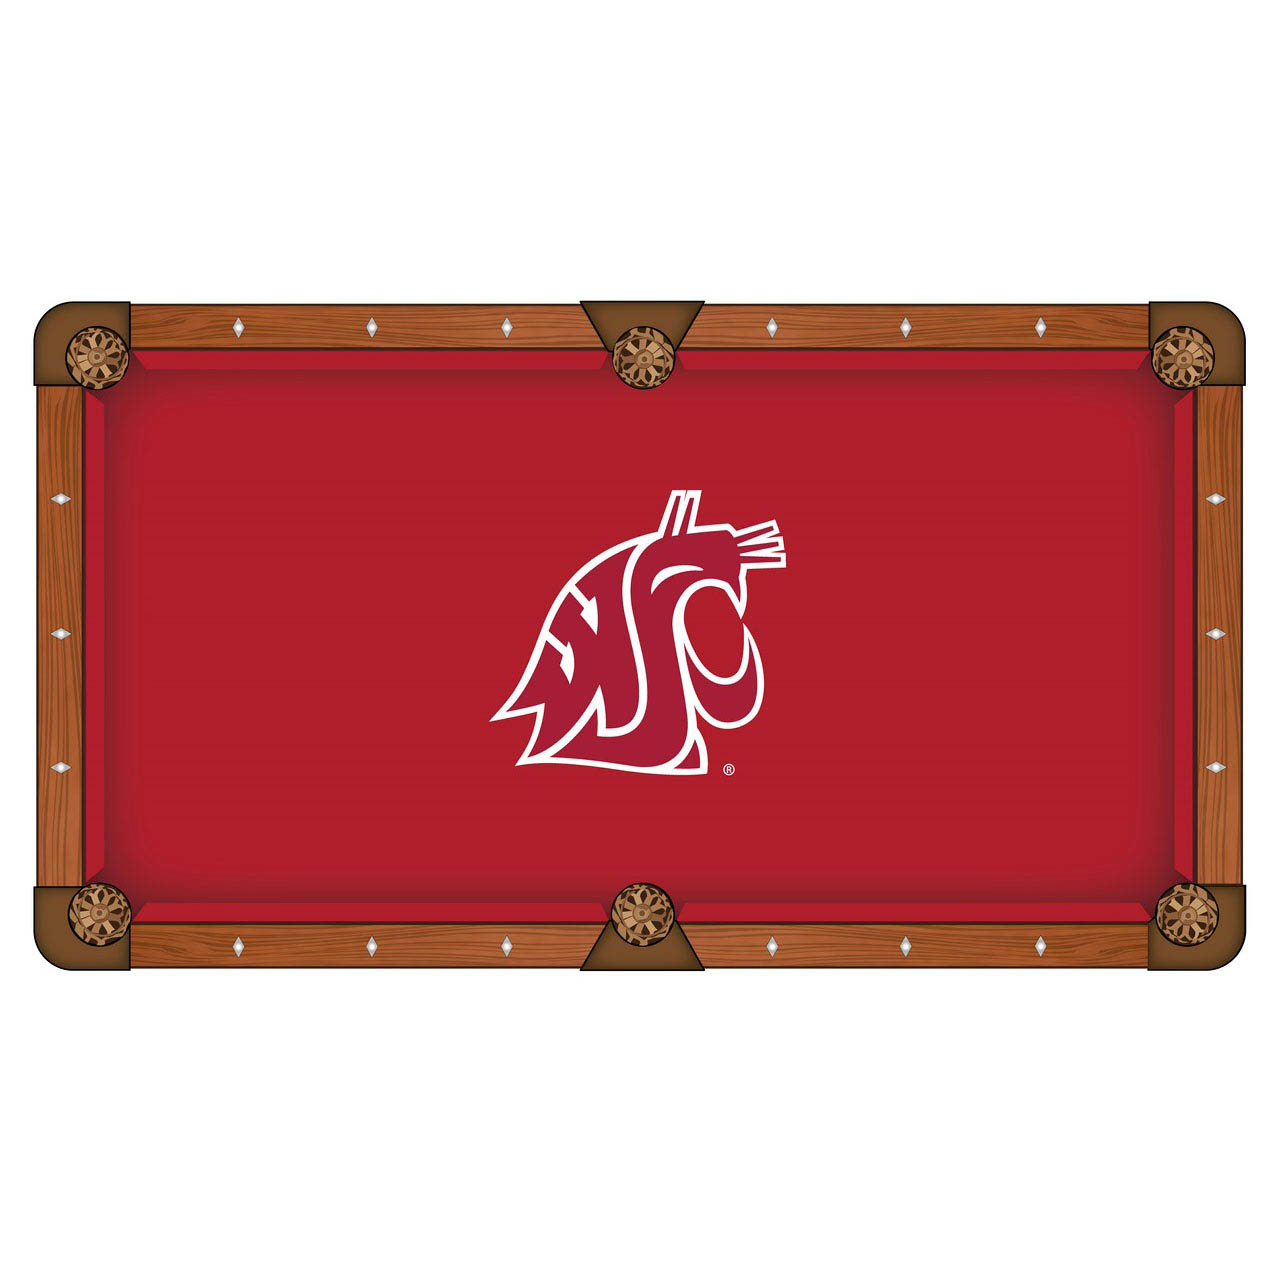 Select Washington-State-University-Pool-Table-Cloth Product Picture 1047